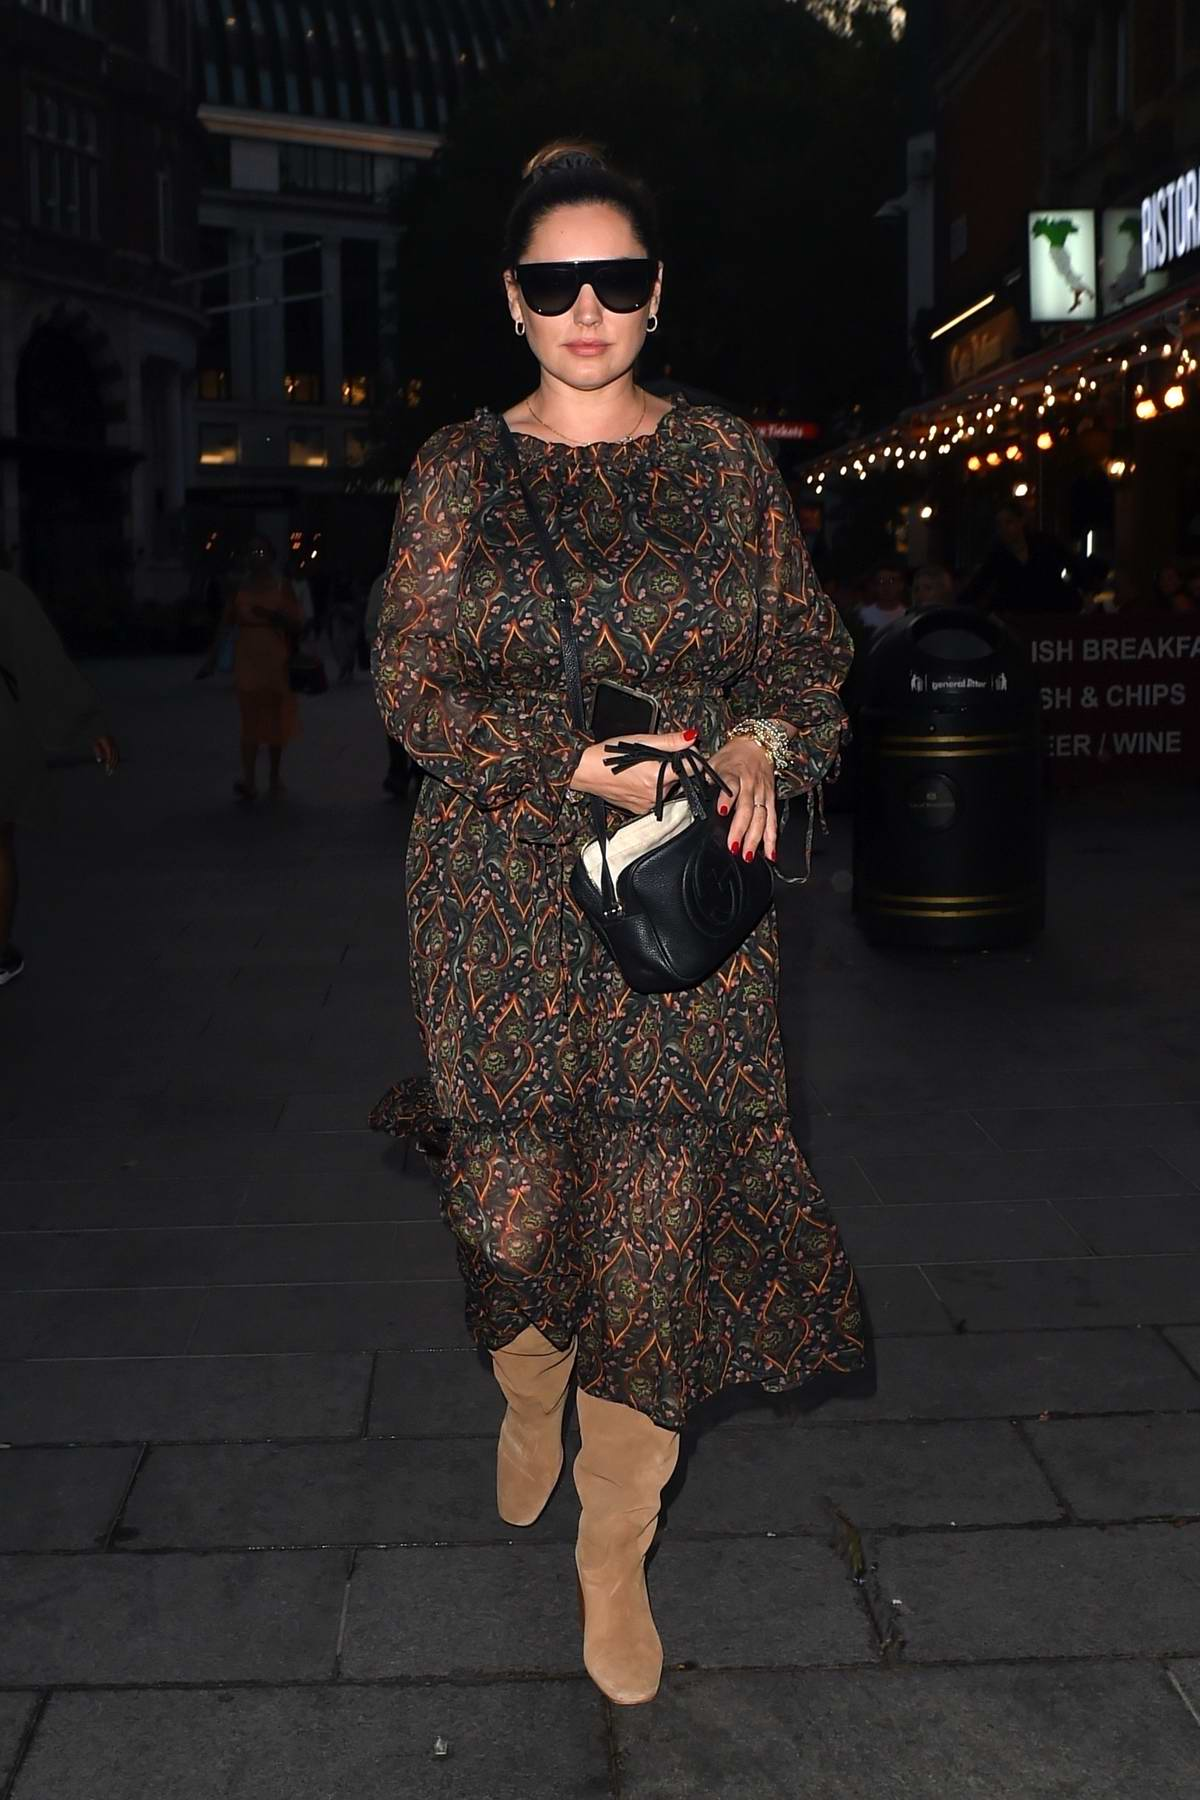 Kelly Brook seen wearing a dark floral print dress with suede boots as she leaves Global Radio in London, UK